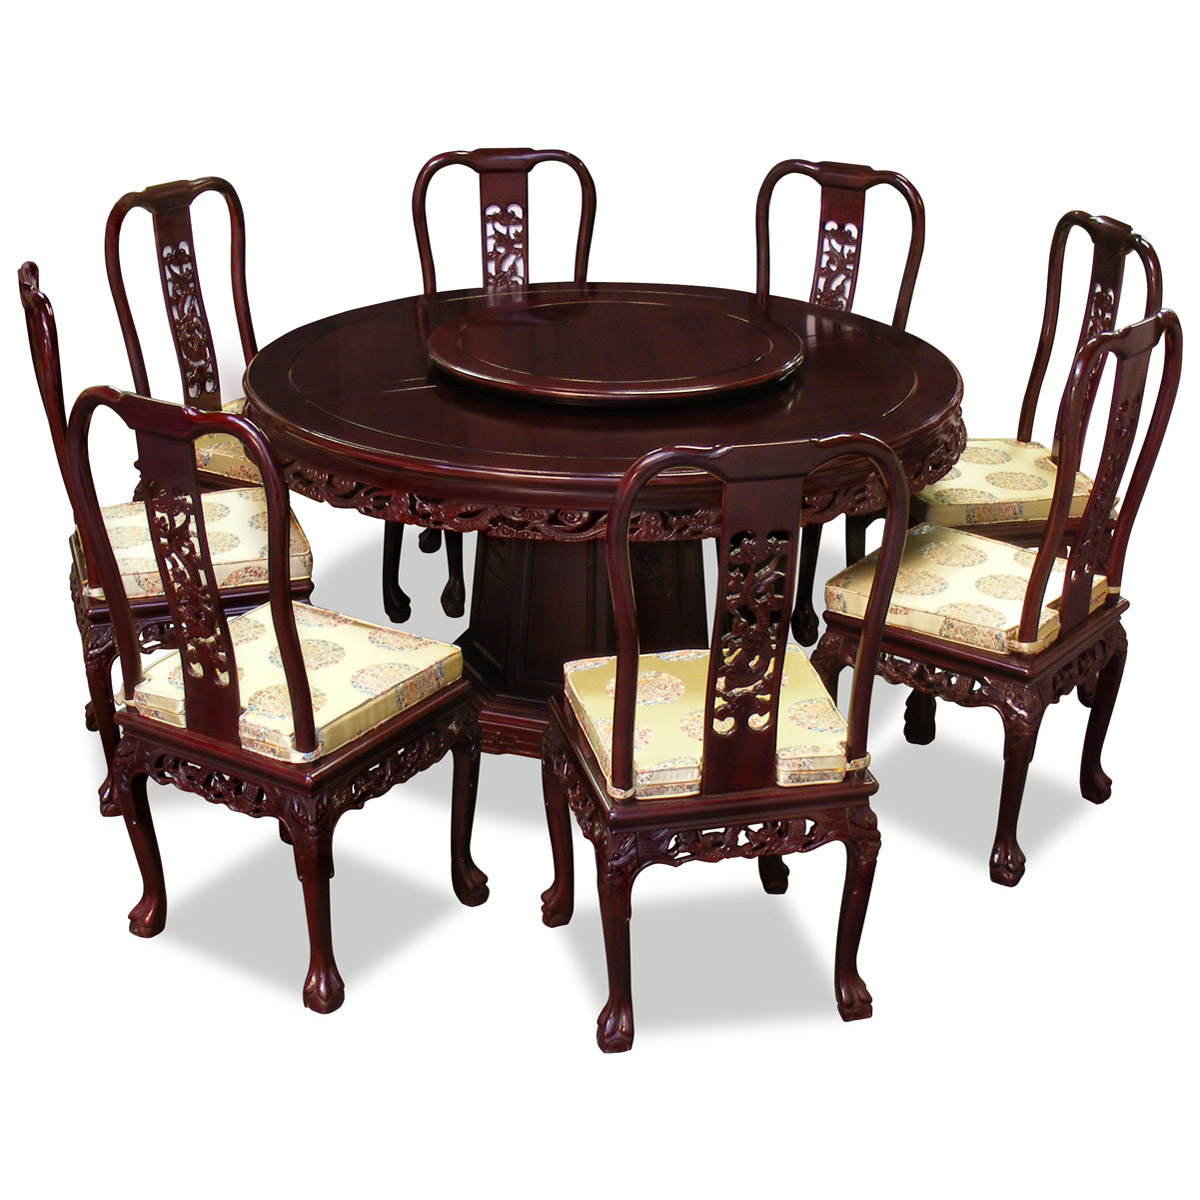 Amazing Round Dining Tables For 8 Photo   3